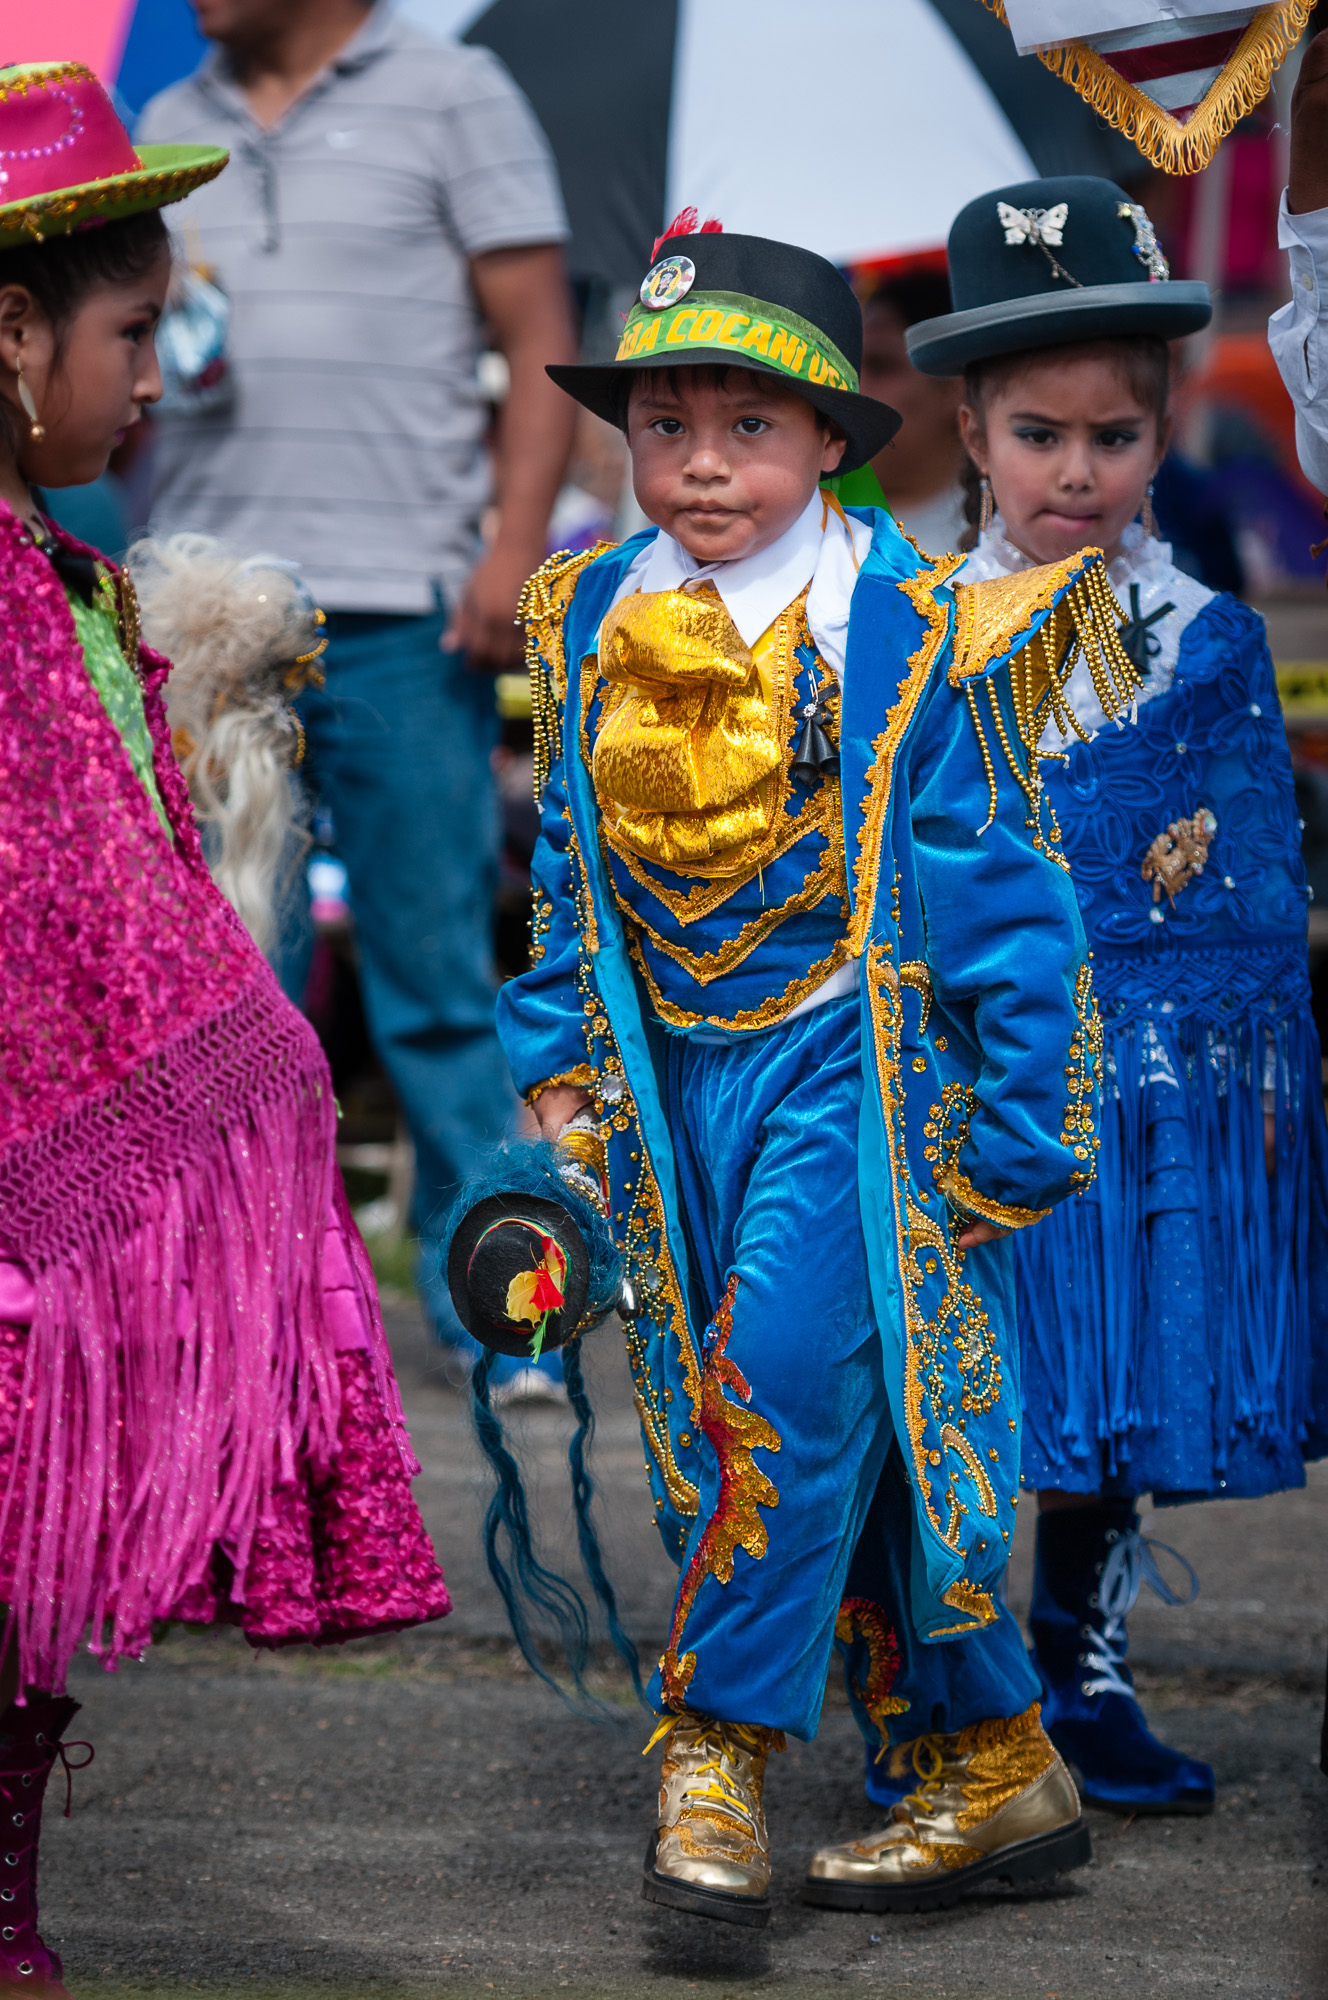 Here is a small group of performers from Morenada Revelacion Cocanis VA USA just after performing a Morenada dance.